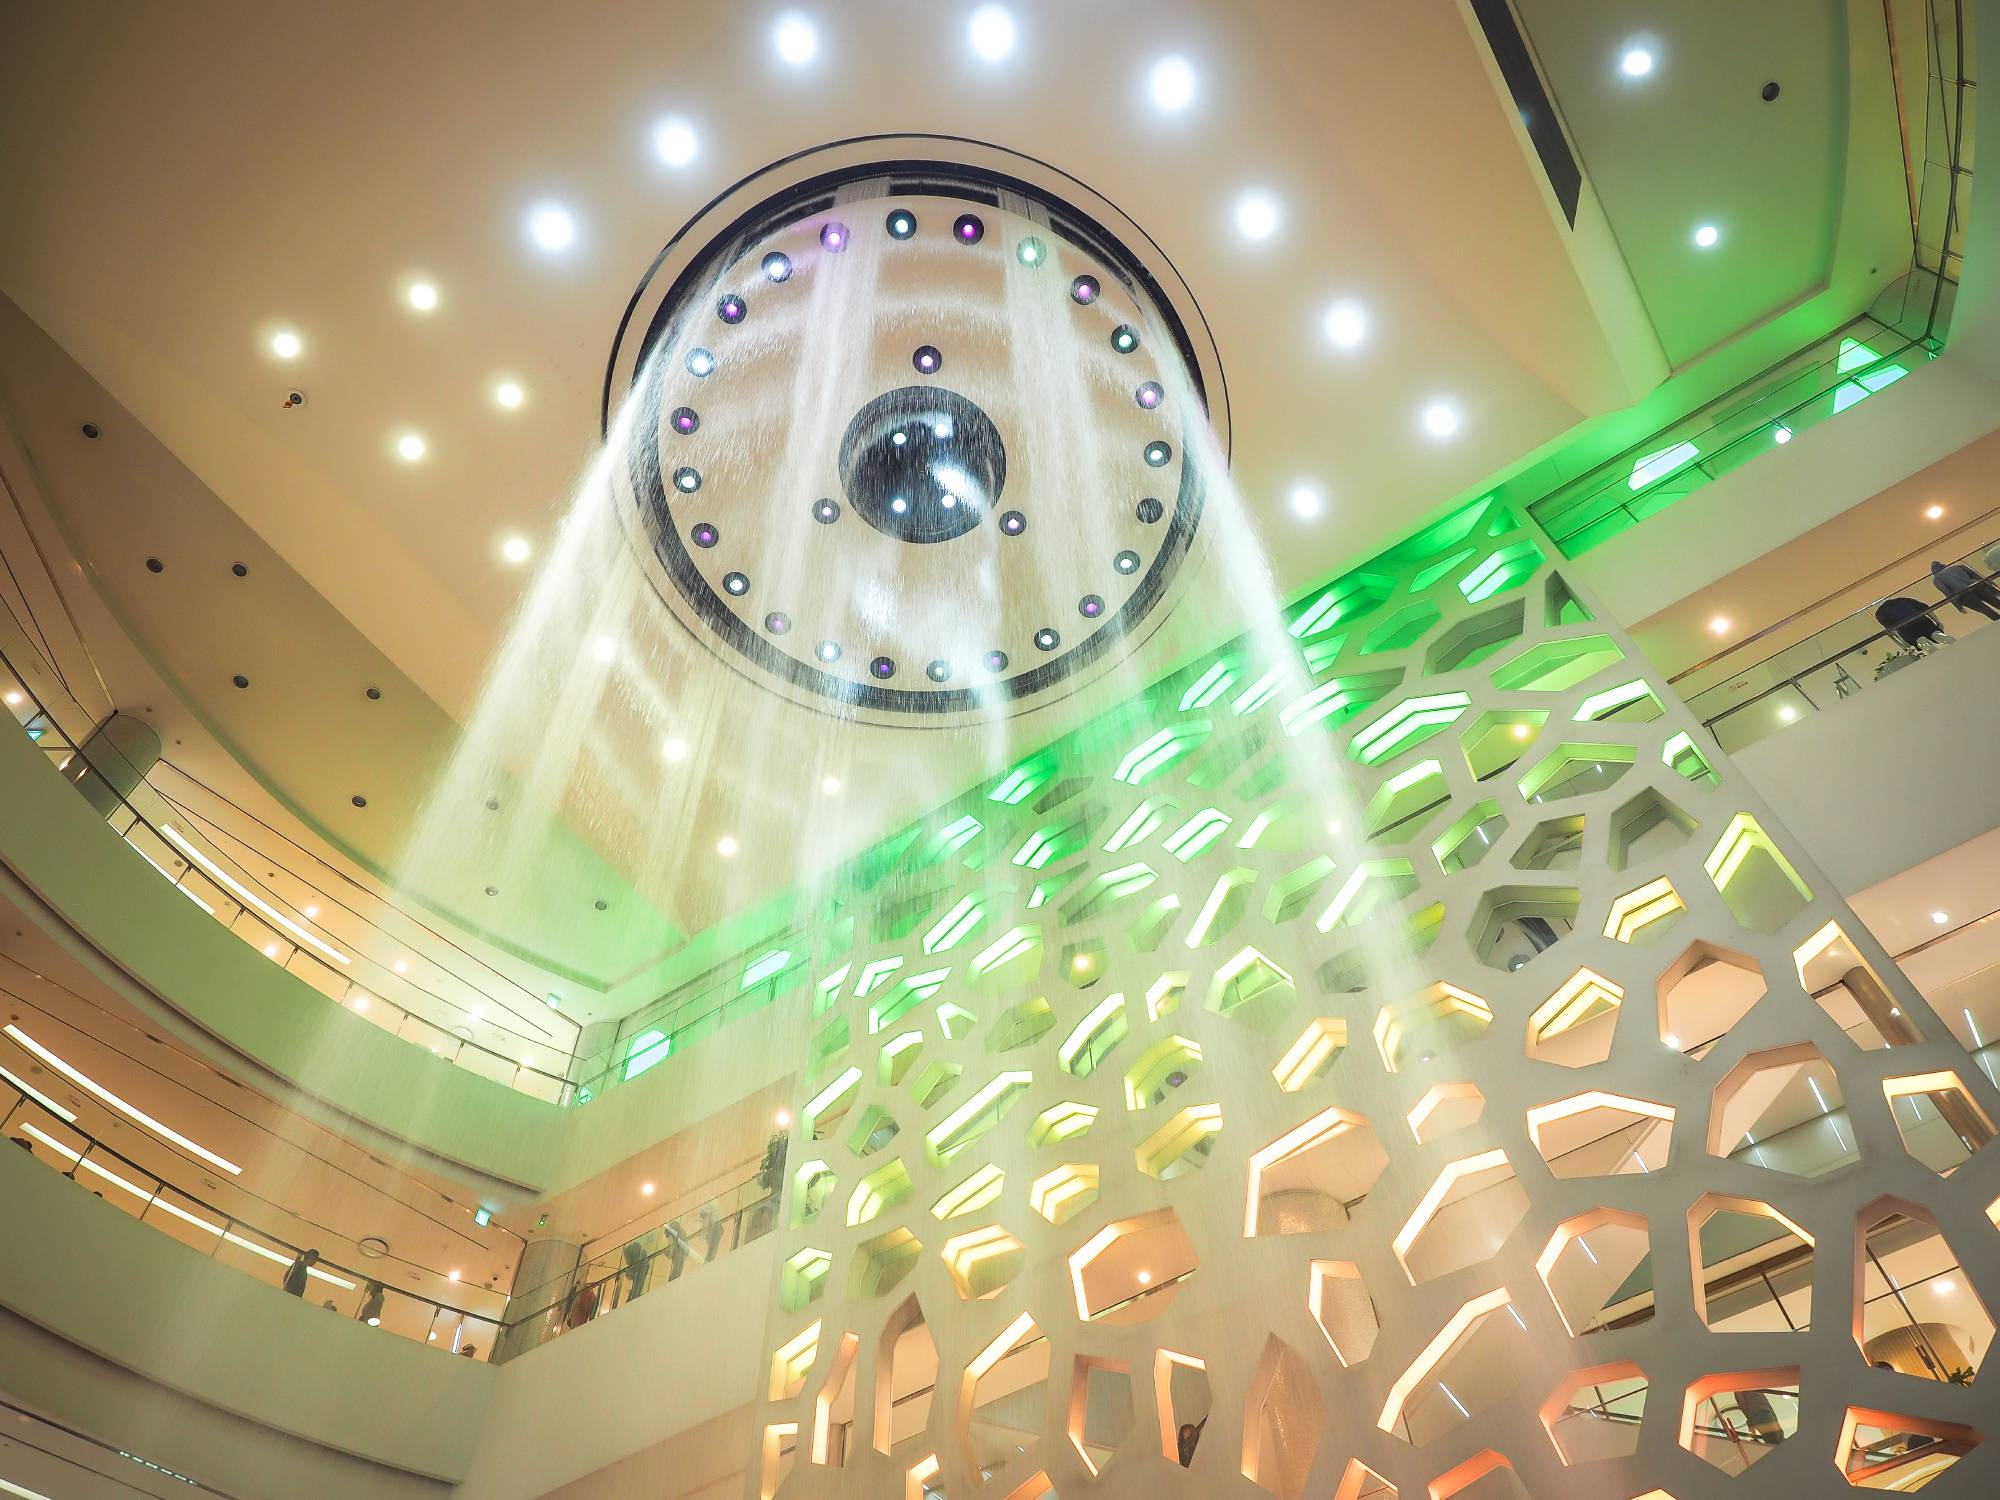 Officially the world's largest indoor musical water fountain show in Lotte Department Store Gwangbokdong